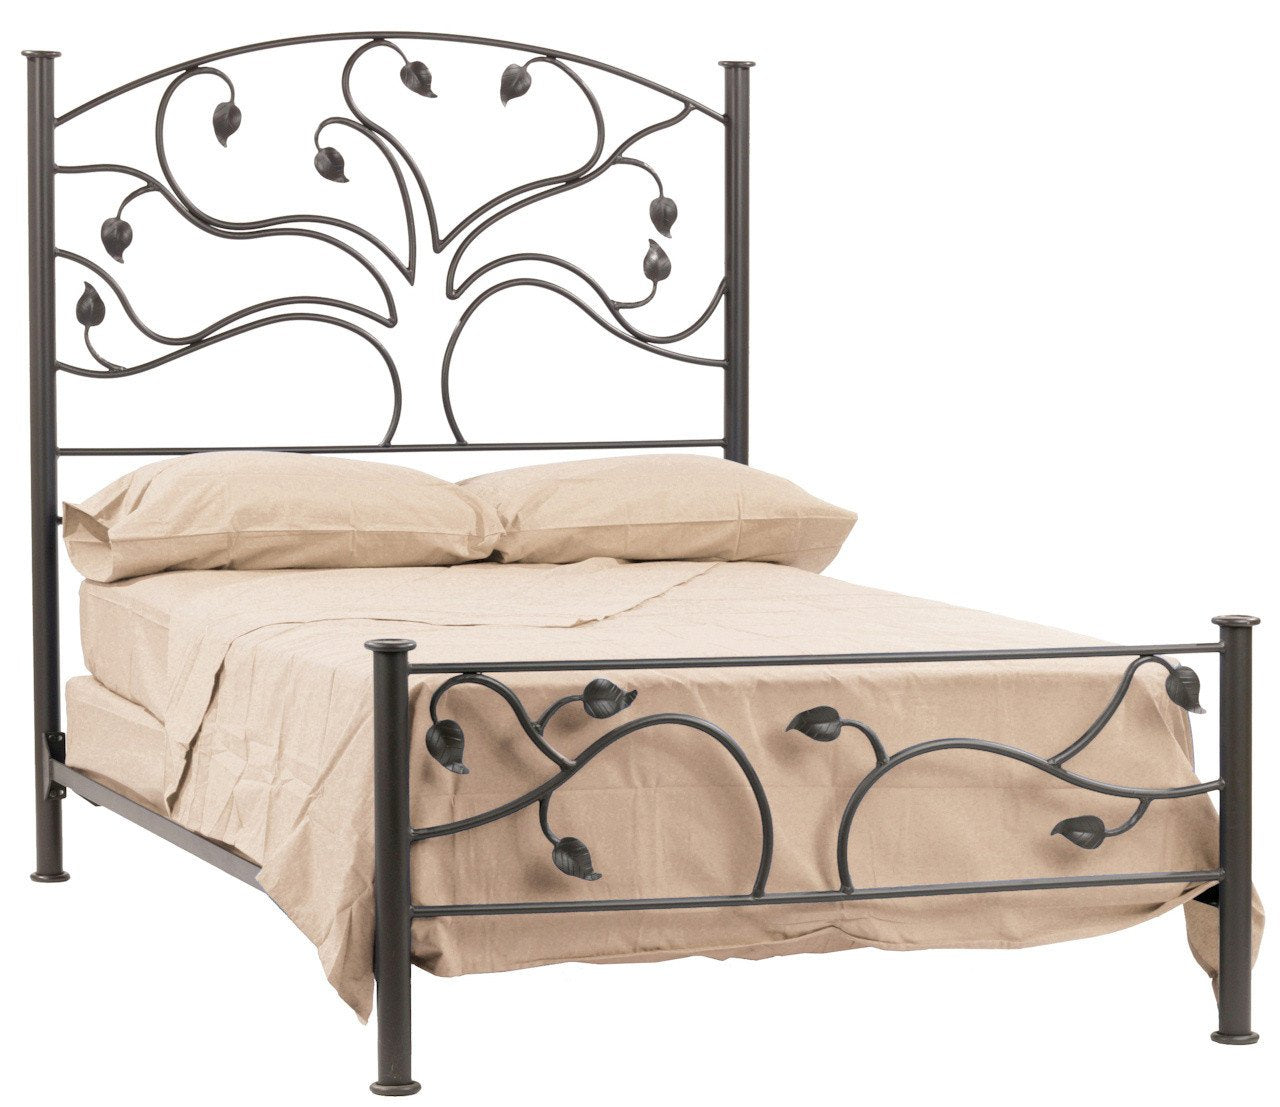 Oak King Bed Live 260 Product Photo